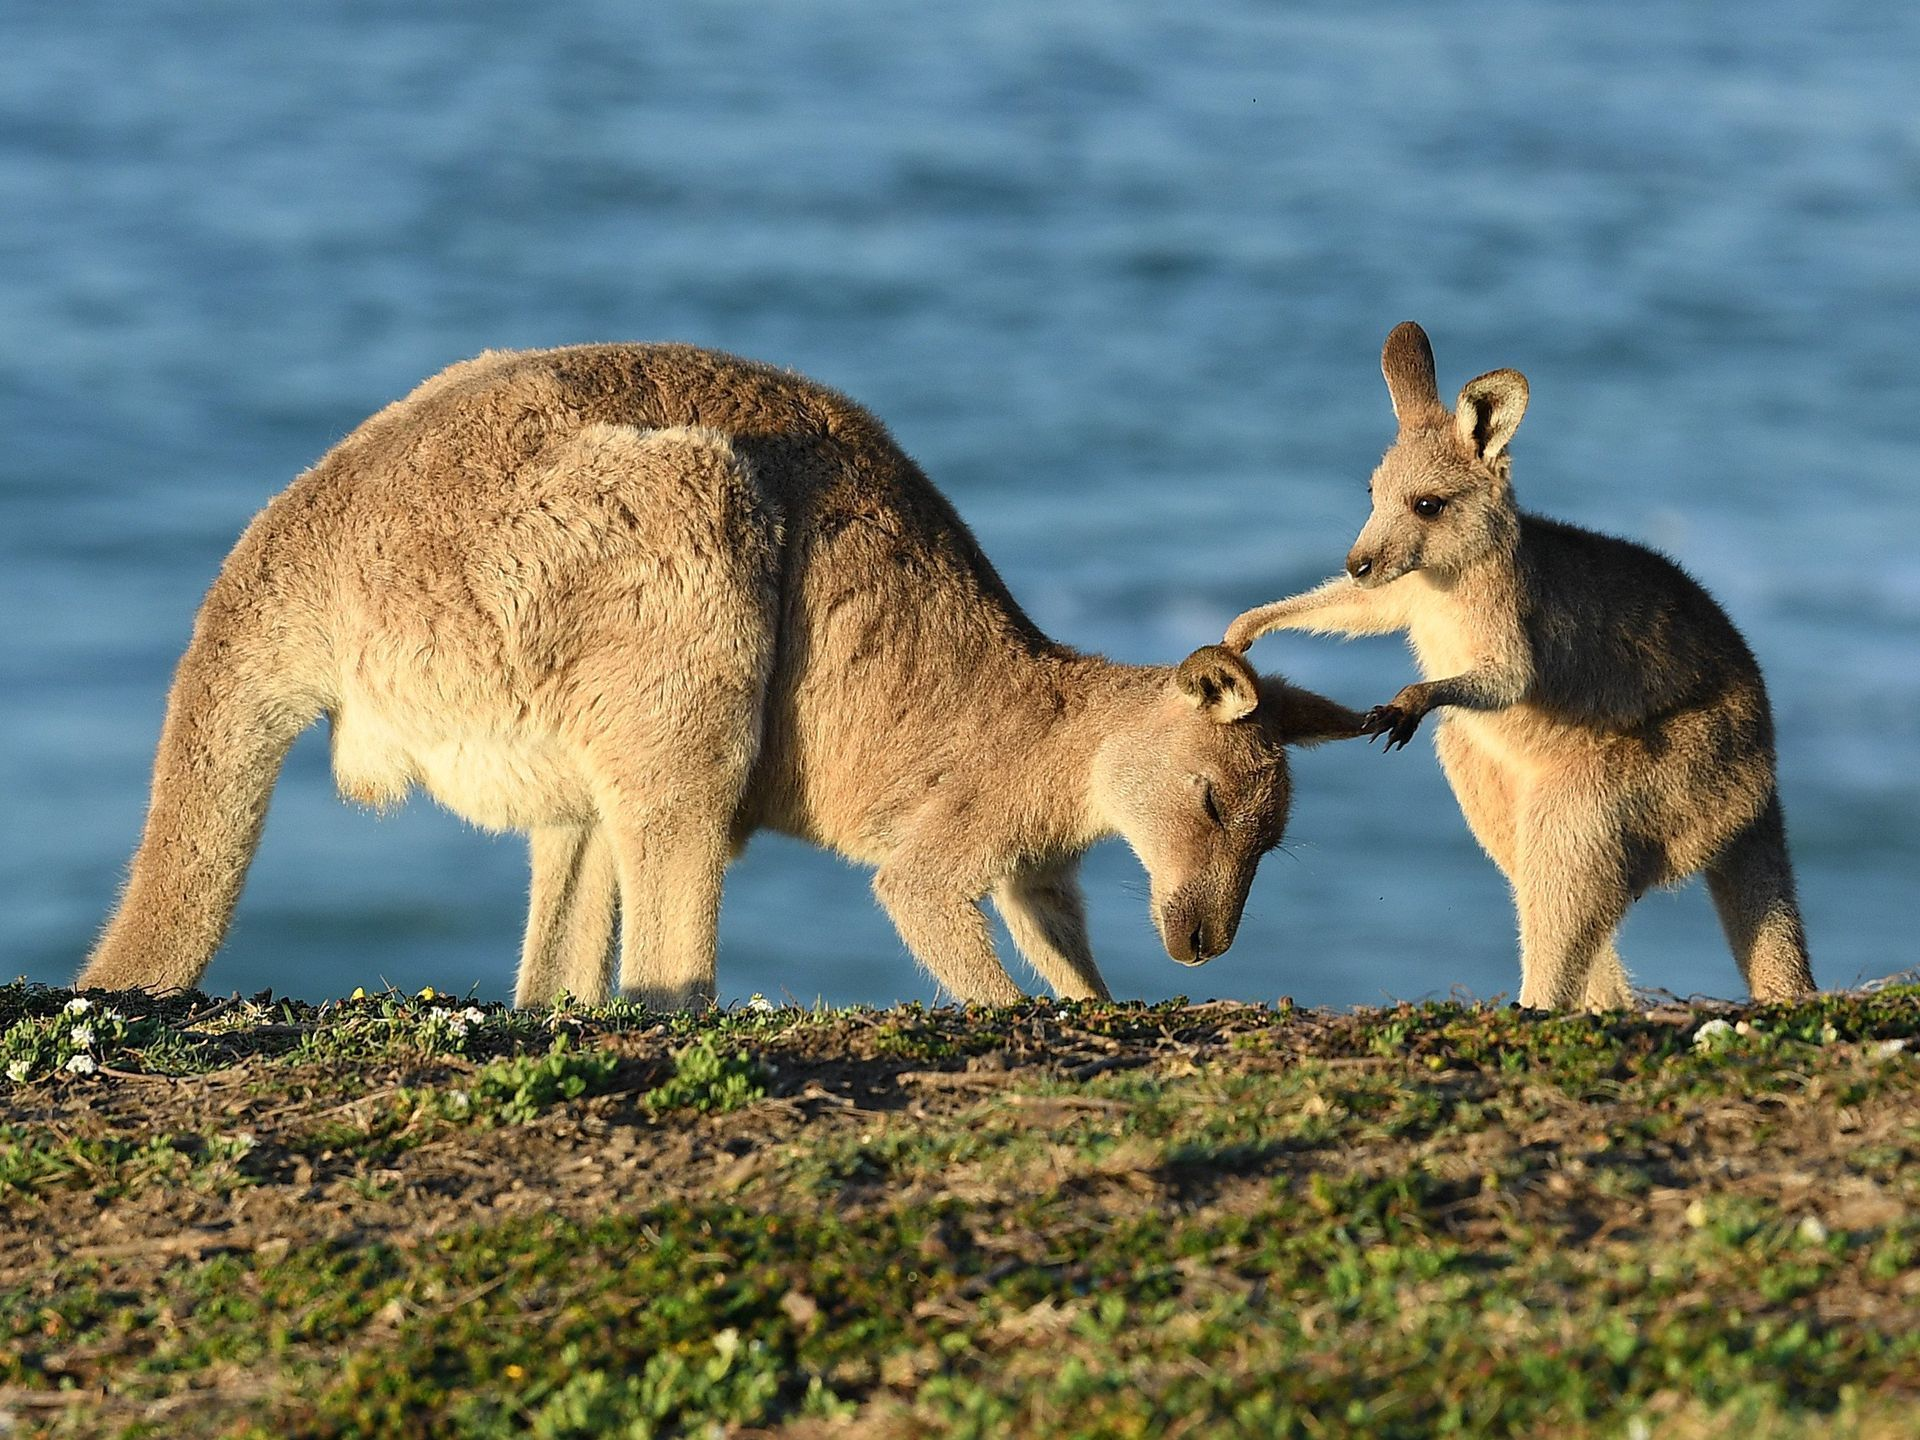 An Eastern Grey Kangaroo Joey Plays With Its Mother At Sunrise On Look Me Now Headland Emerald Beach North Of Coffs Harbour In New South Wales